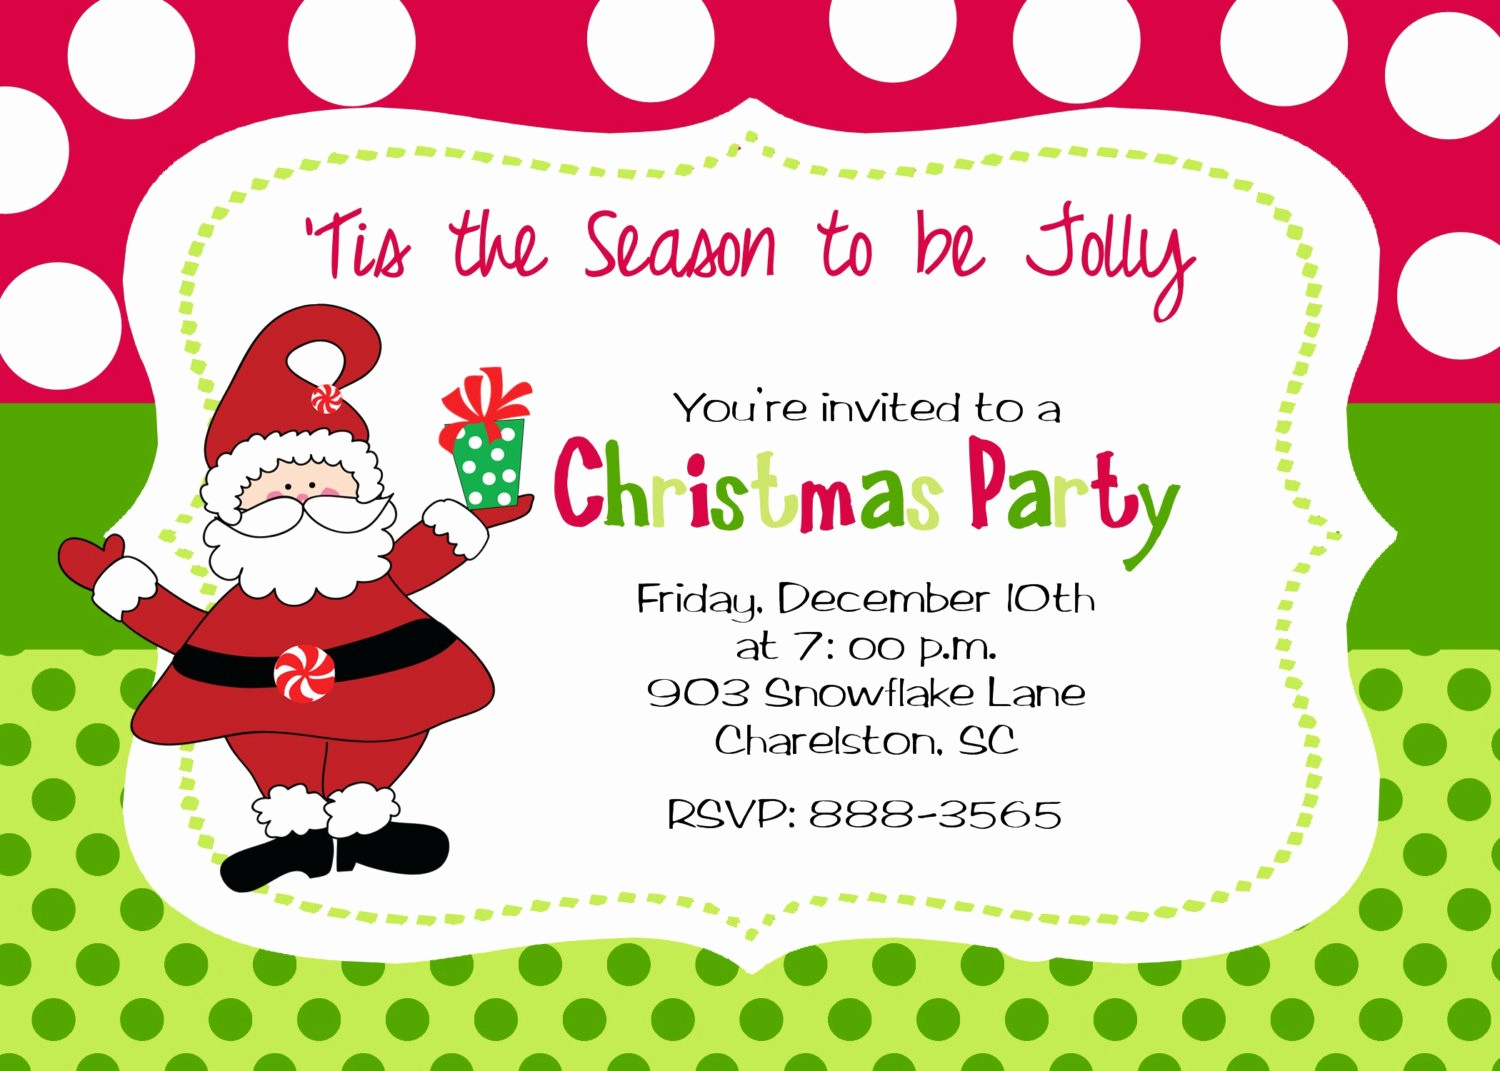 Christmas Party Invitations Free Template Beautiful Christmas Party Invitations Christmas Party Invitations by